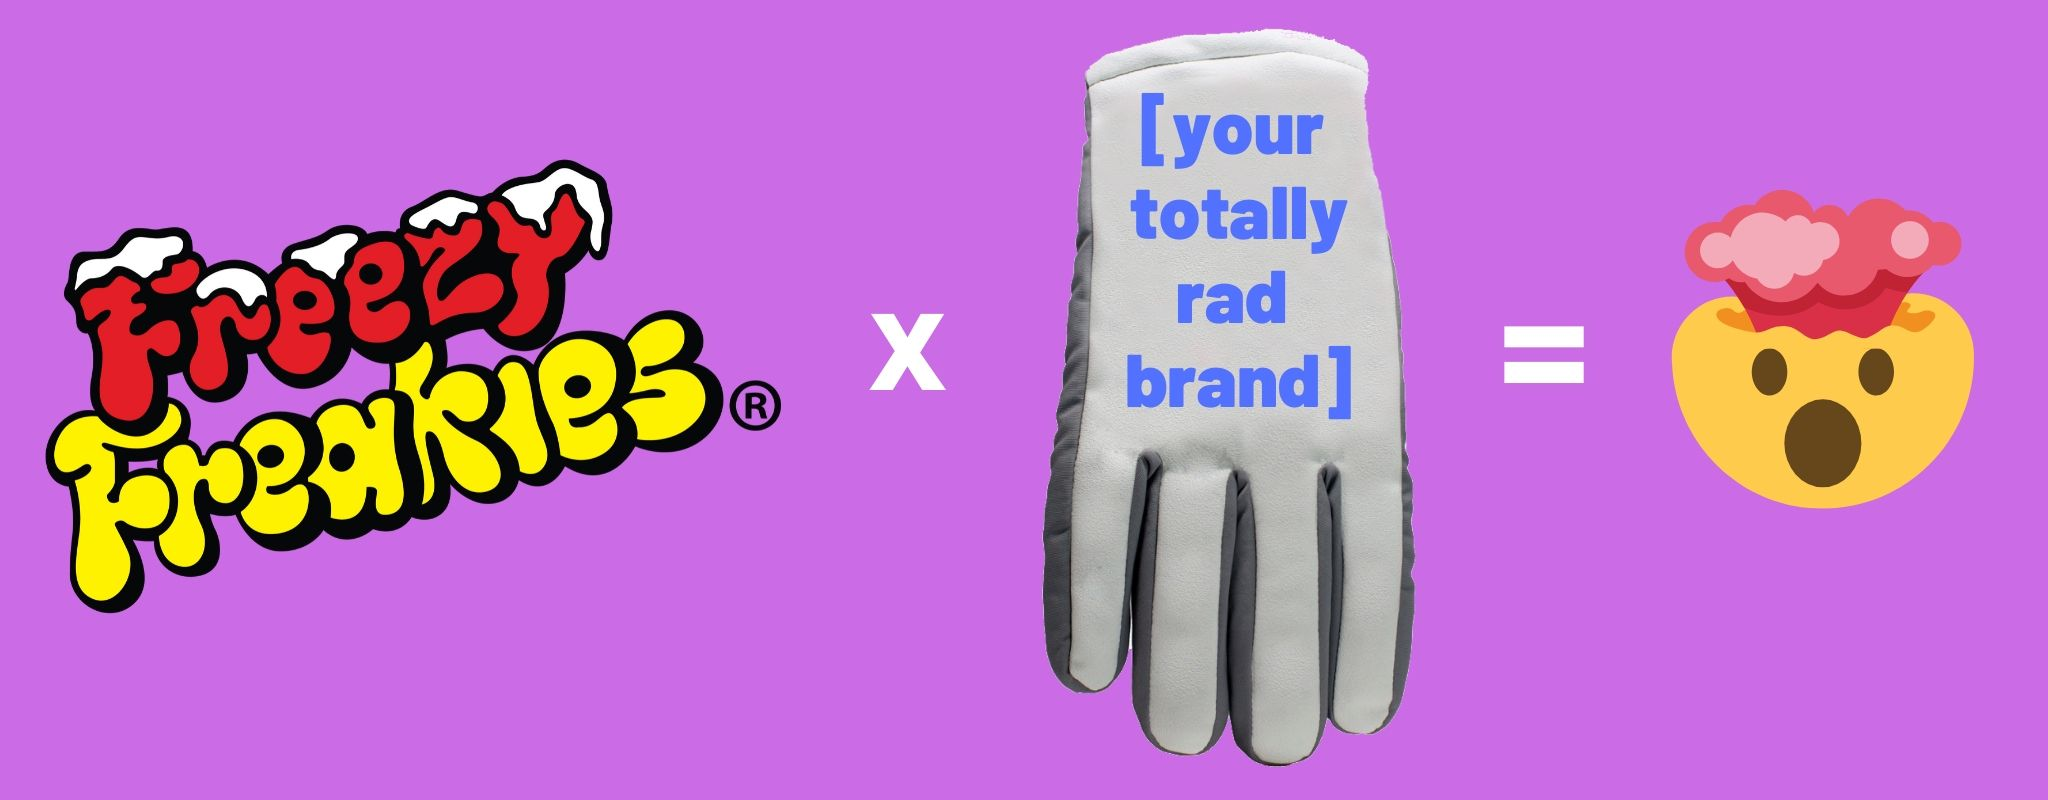 Freezy Freakies x Your brand collab equation